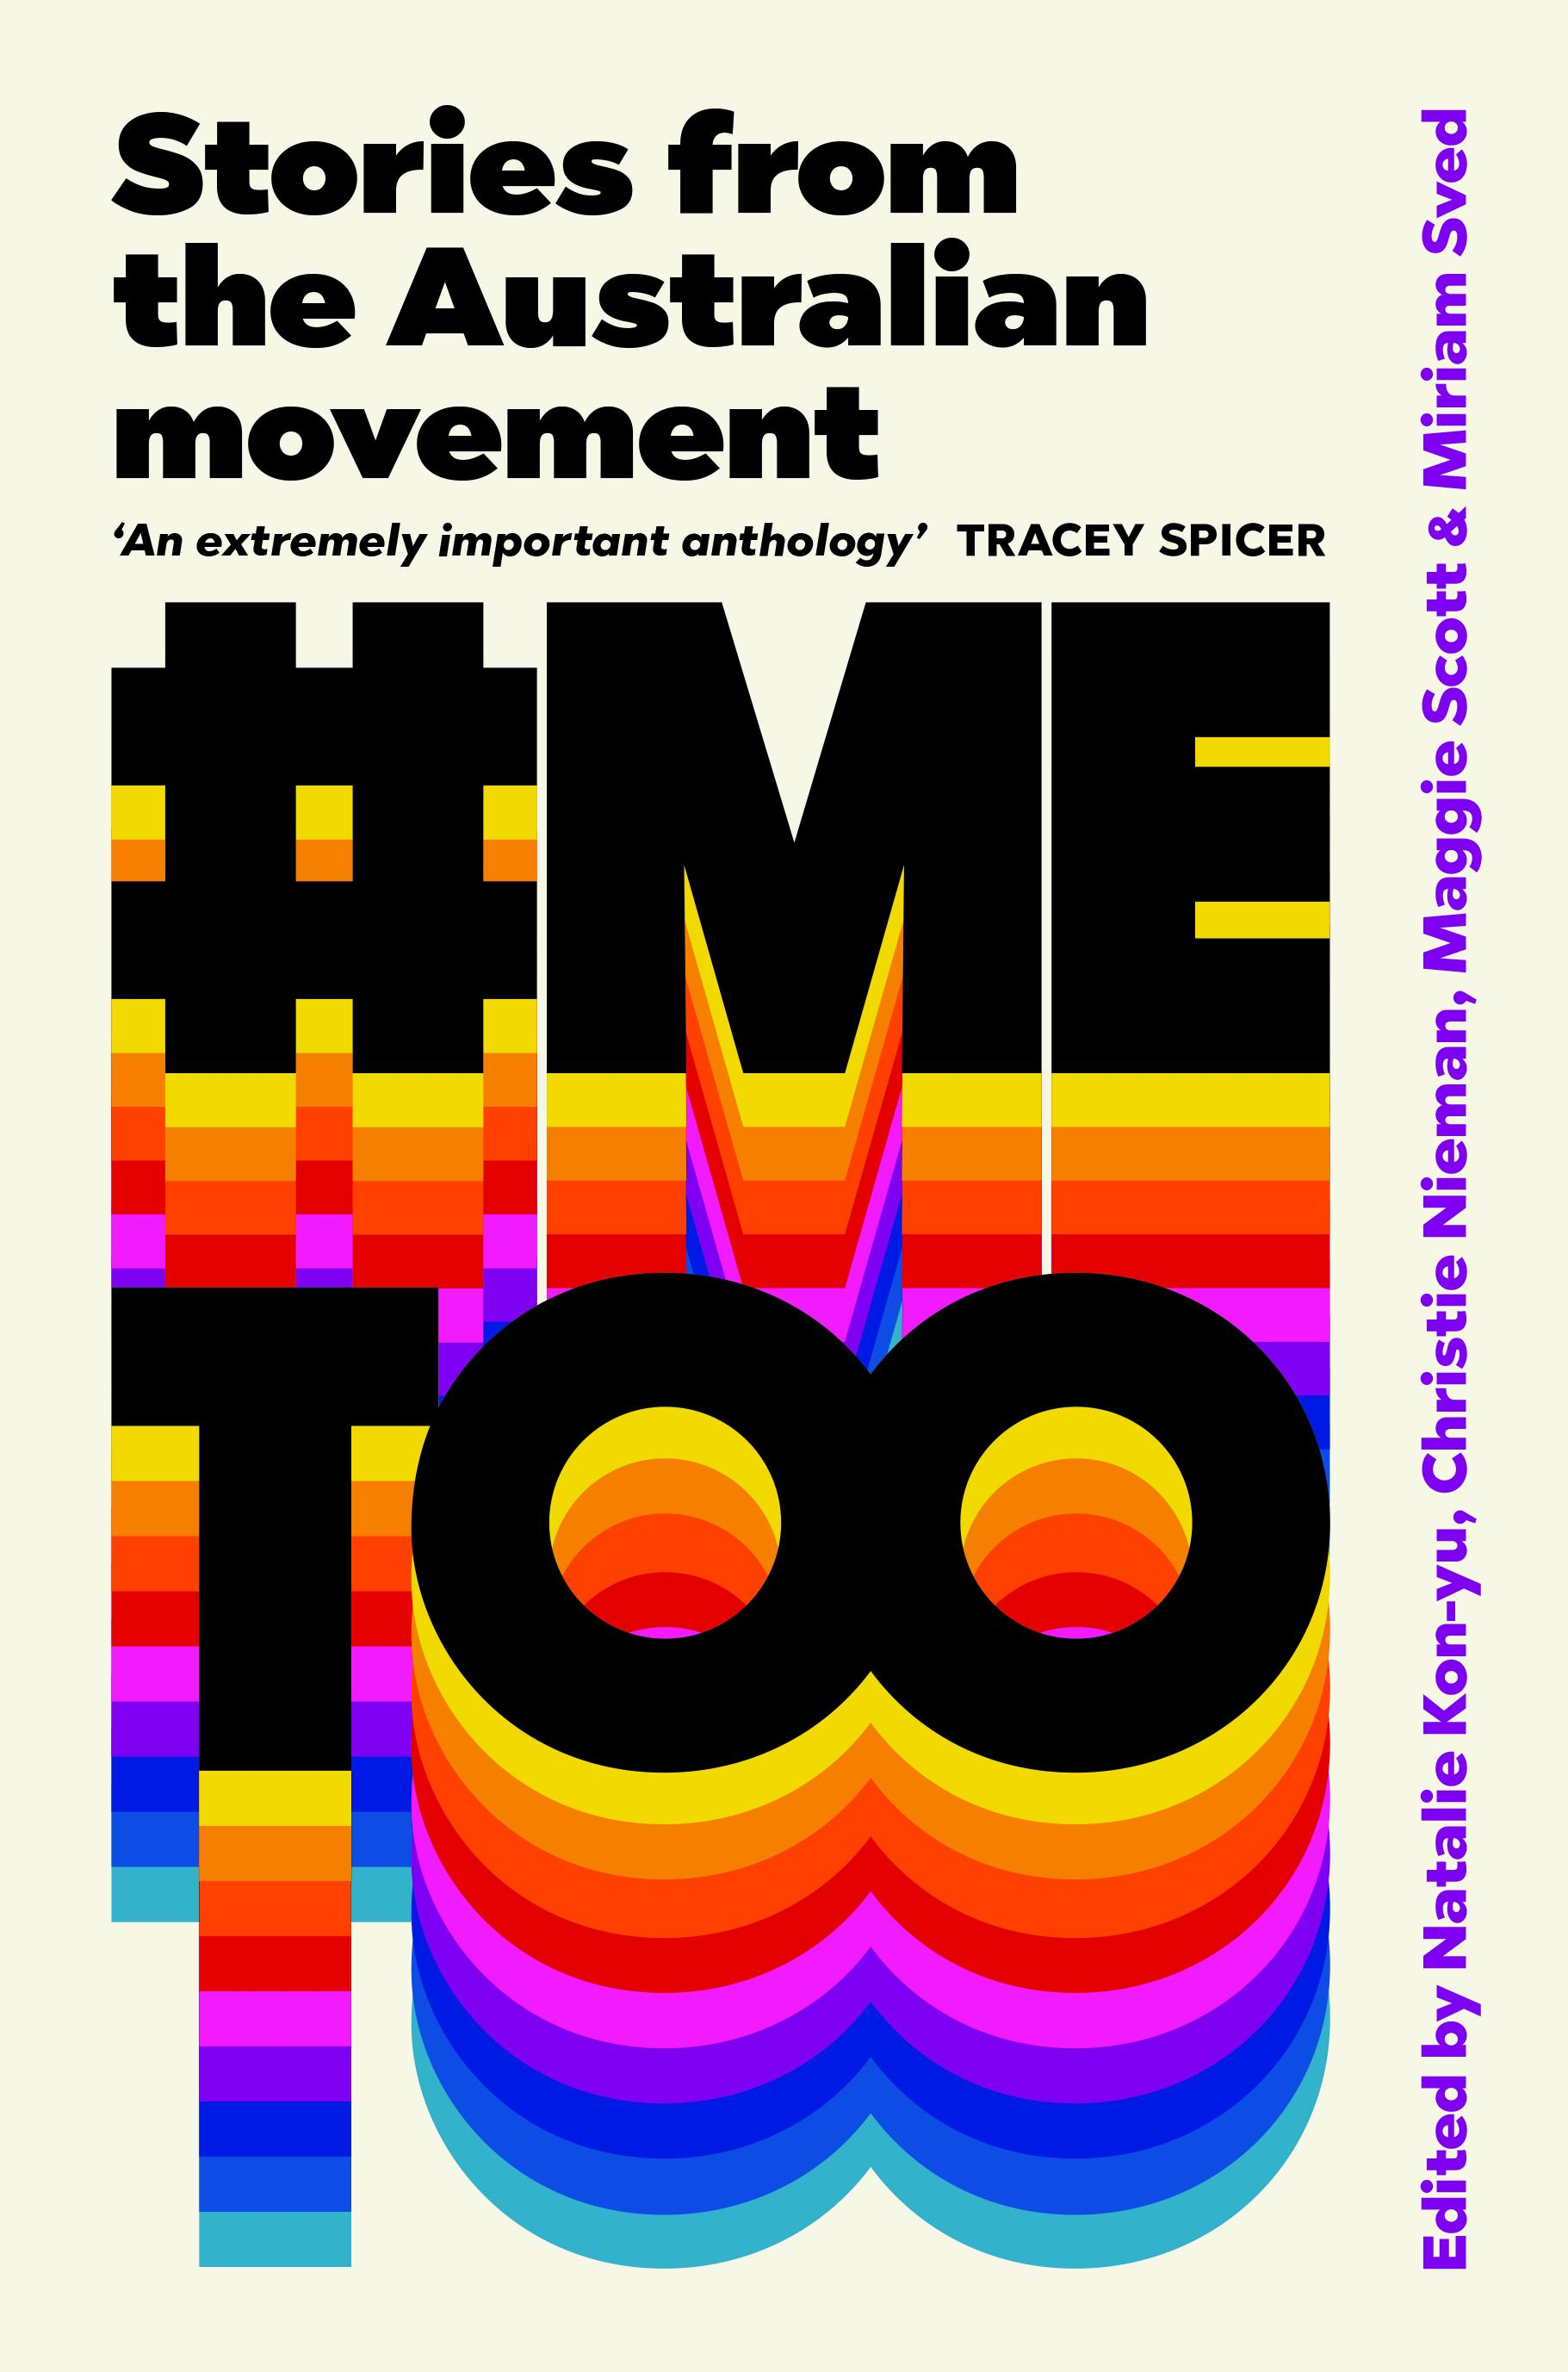 Event: Book launch: #MeToo: Stories from the Australian